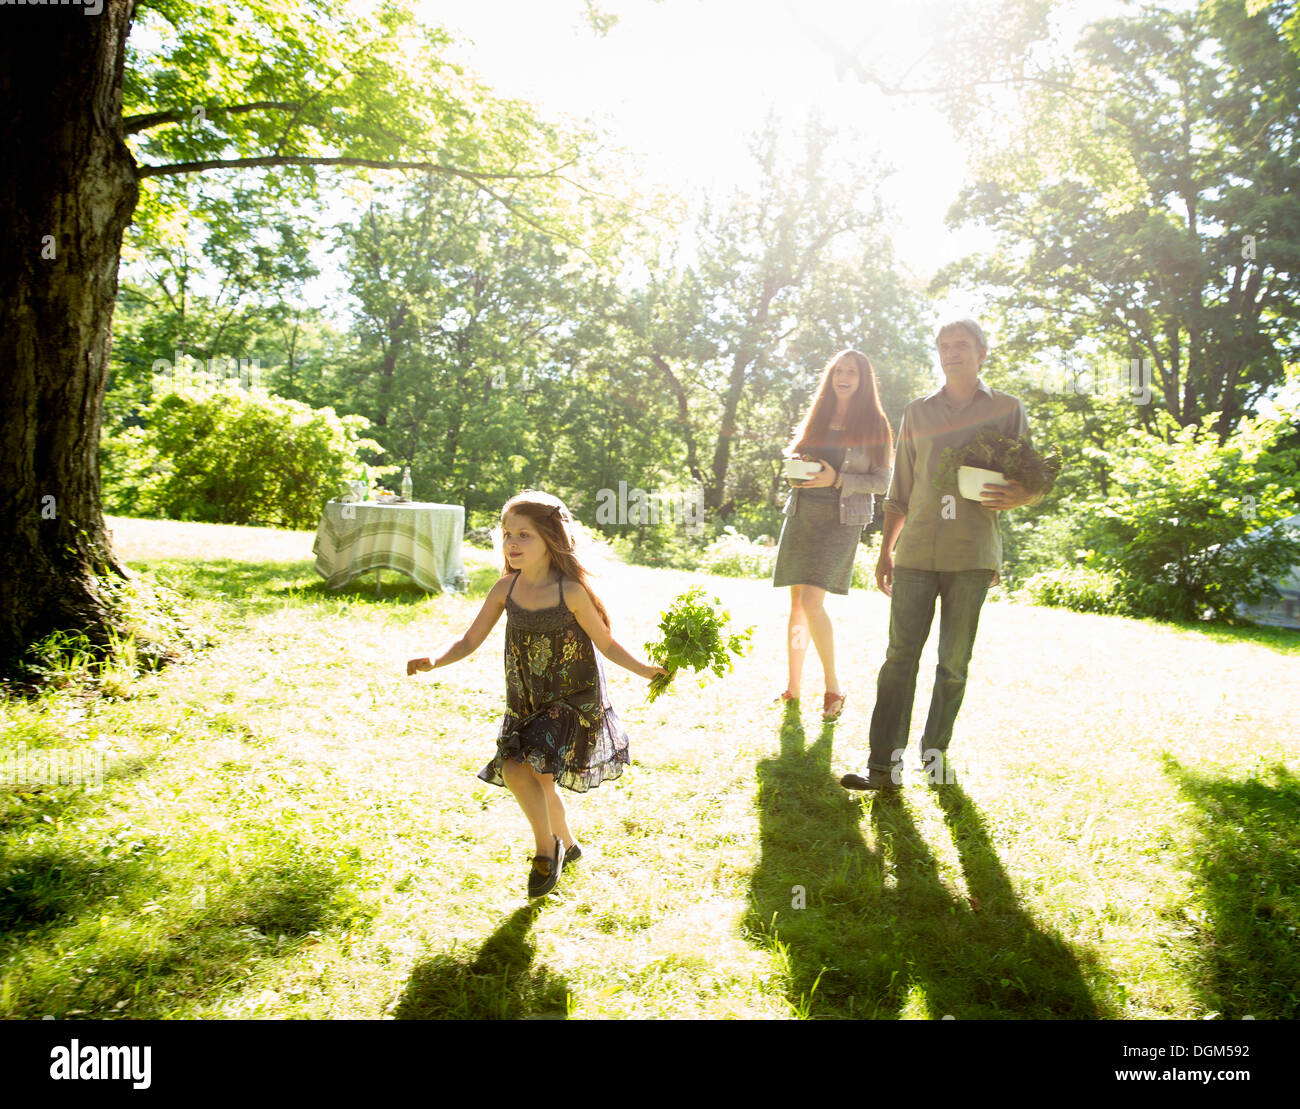 On the farm. Two adults carrying cartons of fresh vegetables and plants. A girl carrying bunches of fresh herbs. - Stock Image